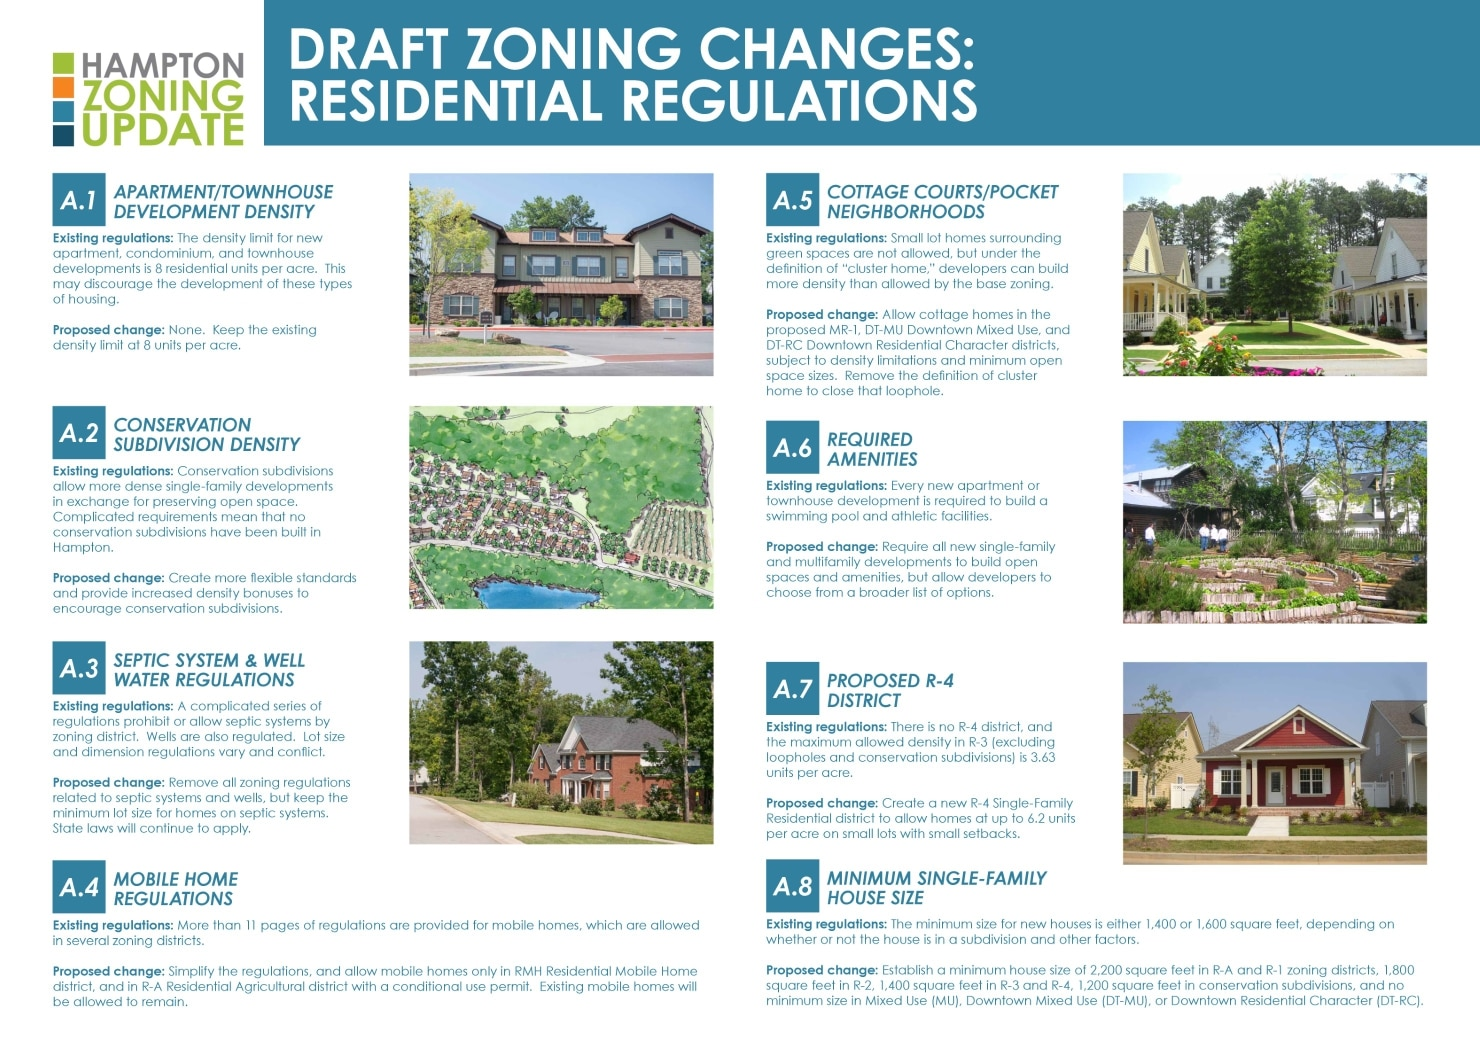 TSW Hampton-Zoning-Update-7 City of Hampton Zoning Update    TSW